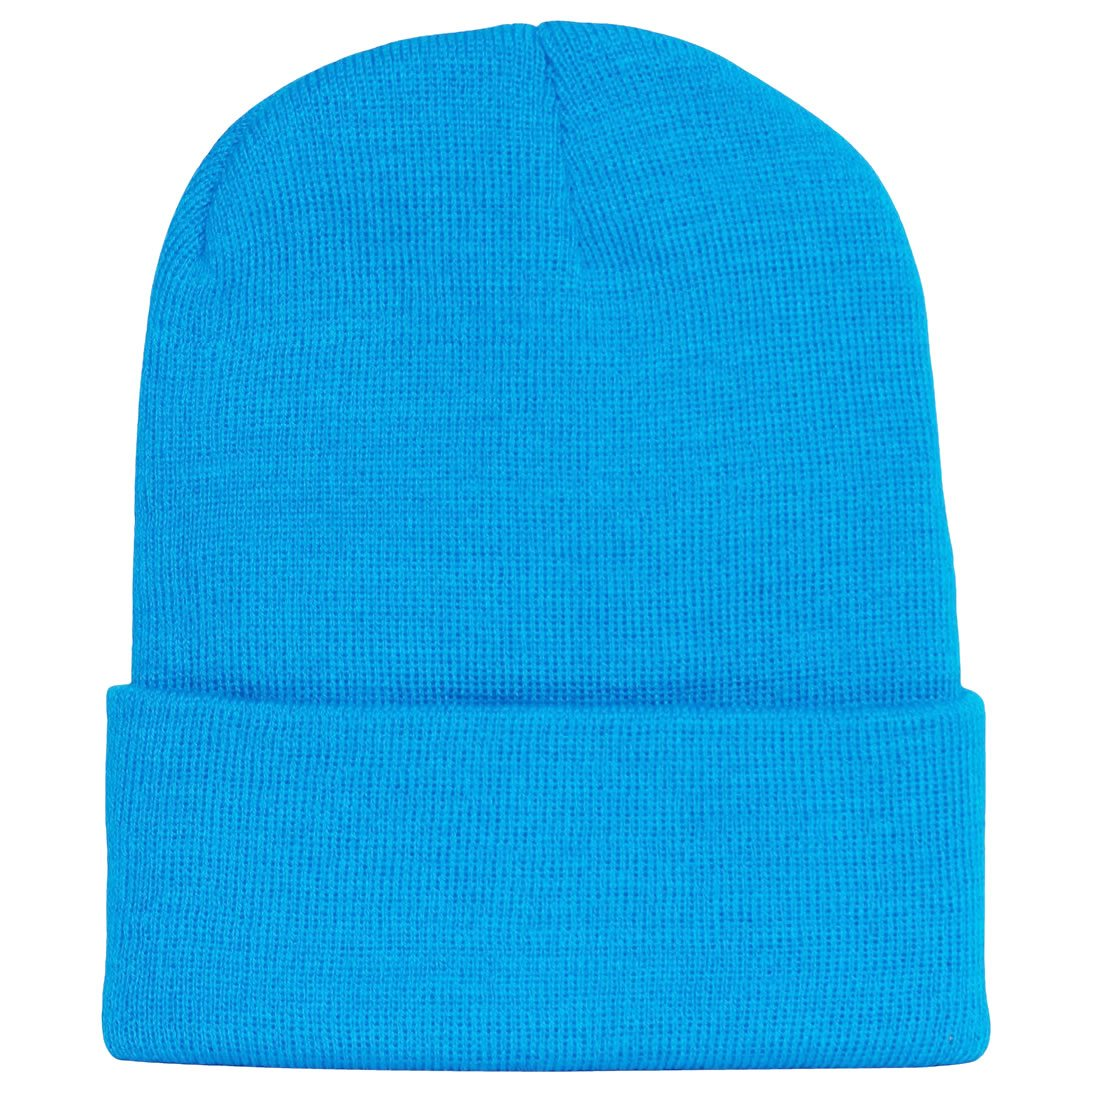 AStorePlus Unisex Lightweight Solid Color Black Knitted Cuff Beanie Hat Cup  at Amazon Men s Clothing store  55516e164626